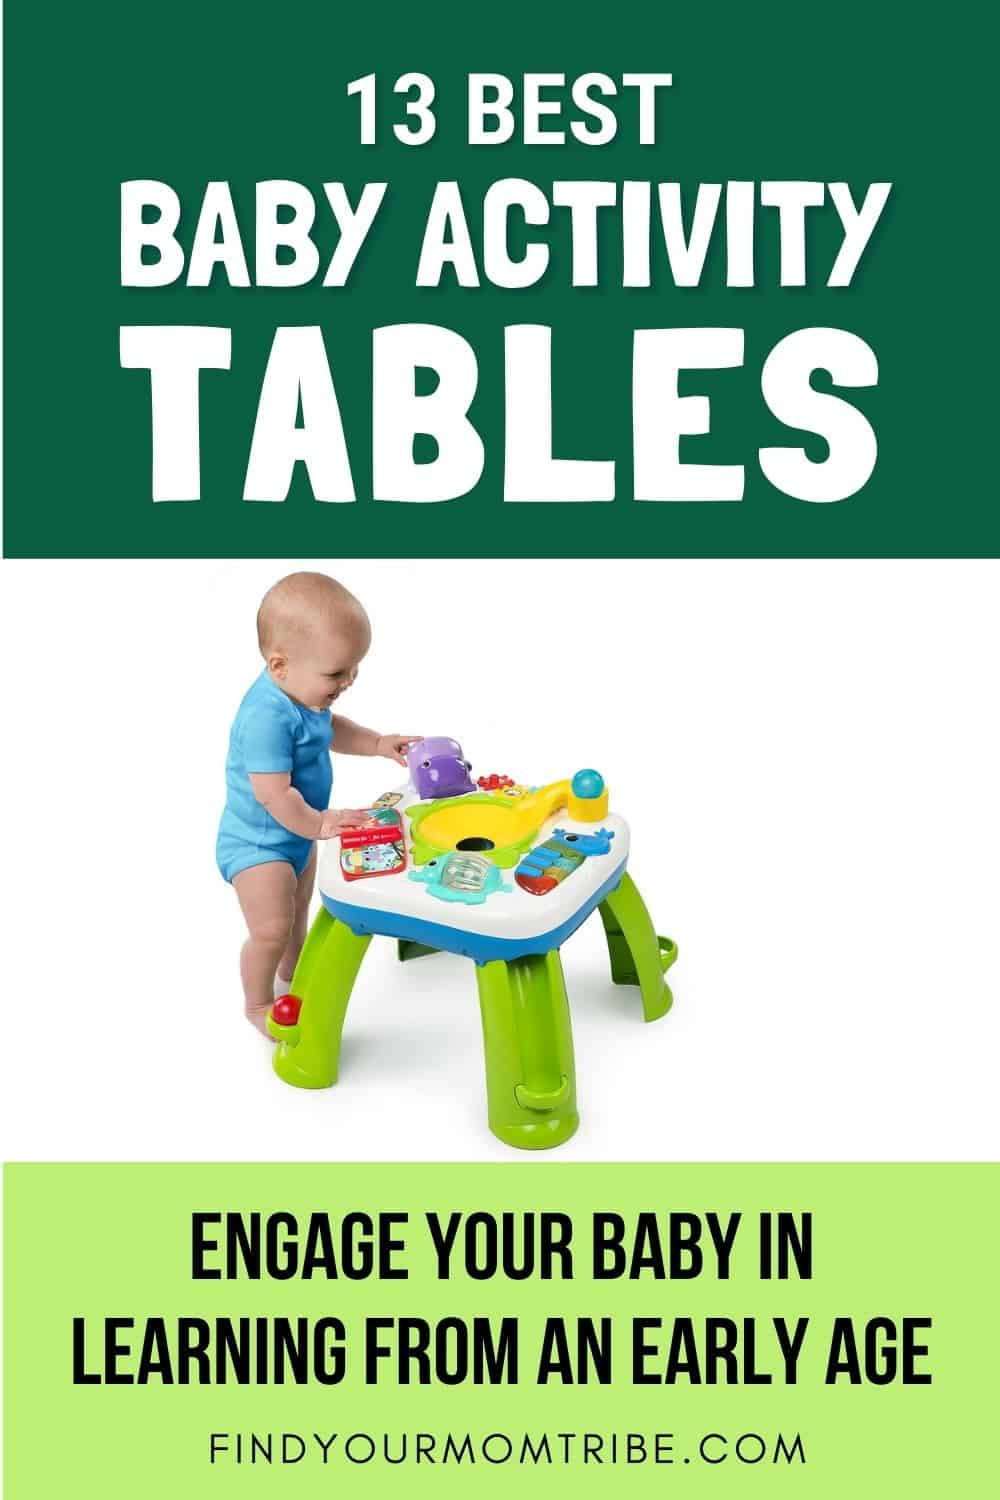 13 Best Baby Activity Tables Pinterest